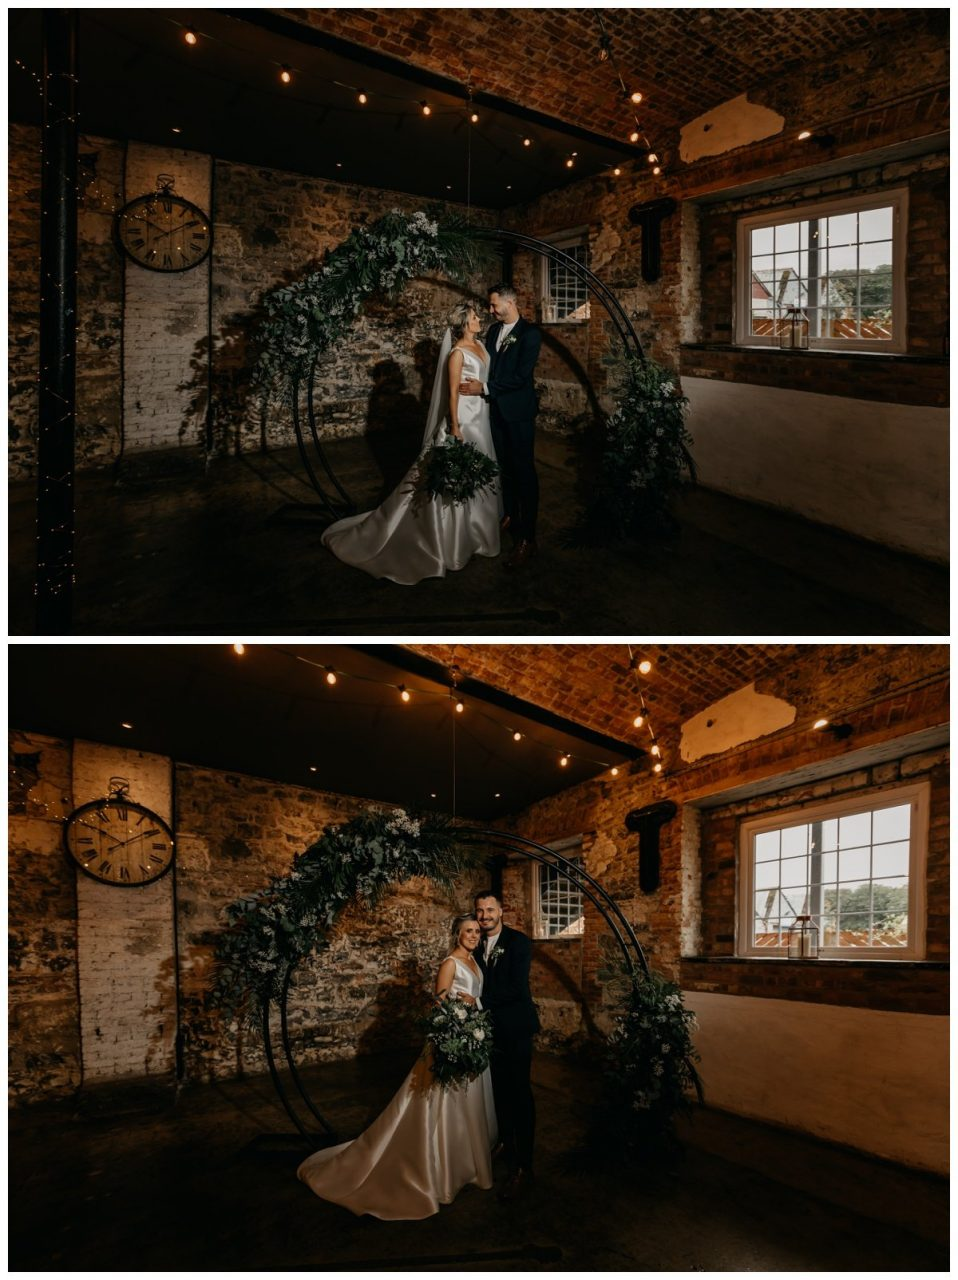 raceview mill wool tower wedding photographer northern ireland 0099